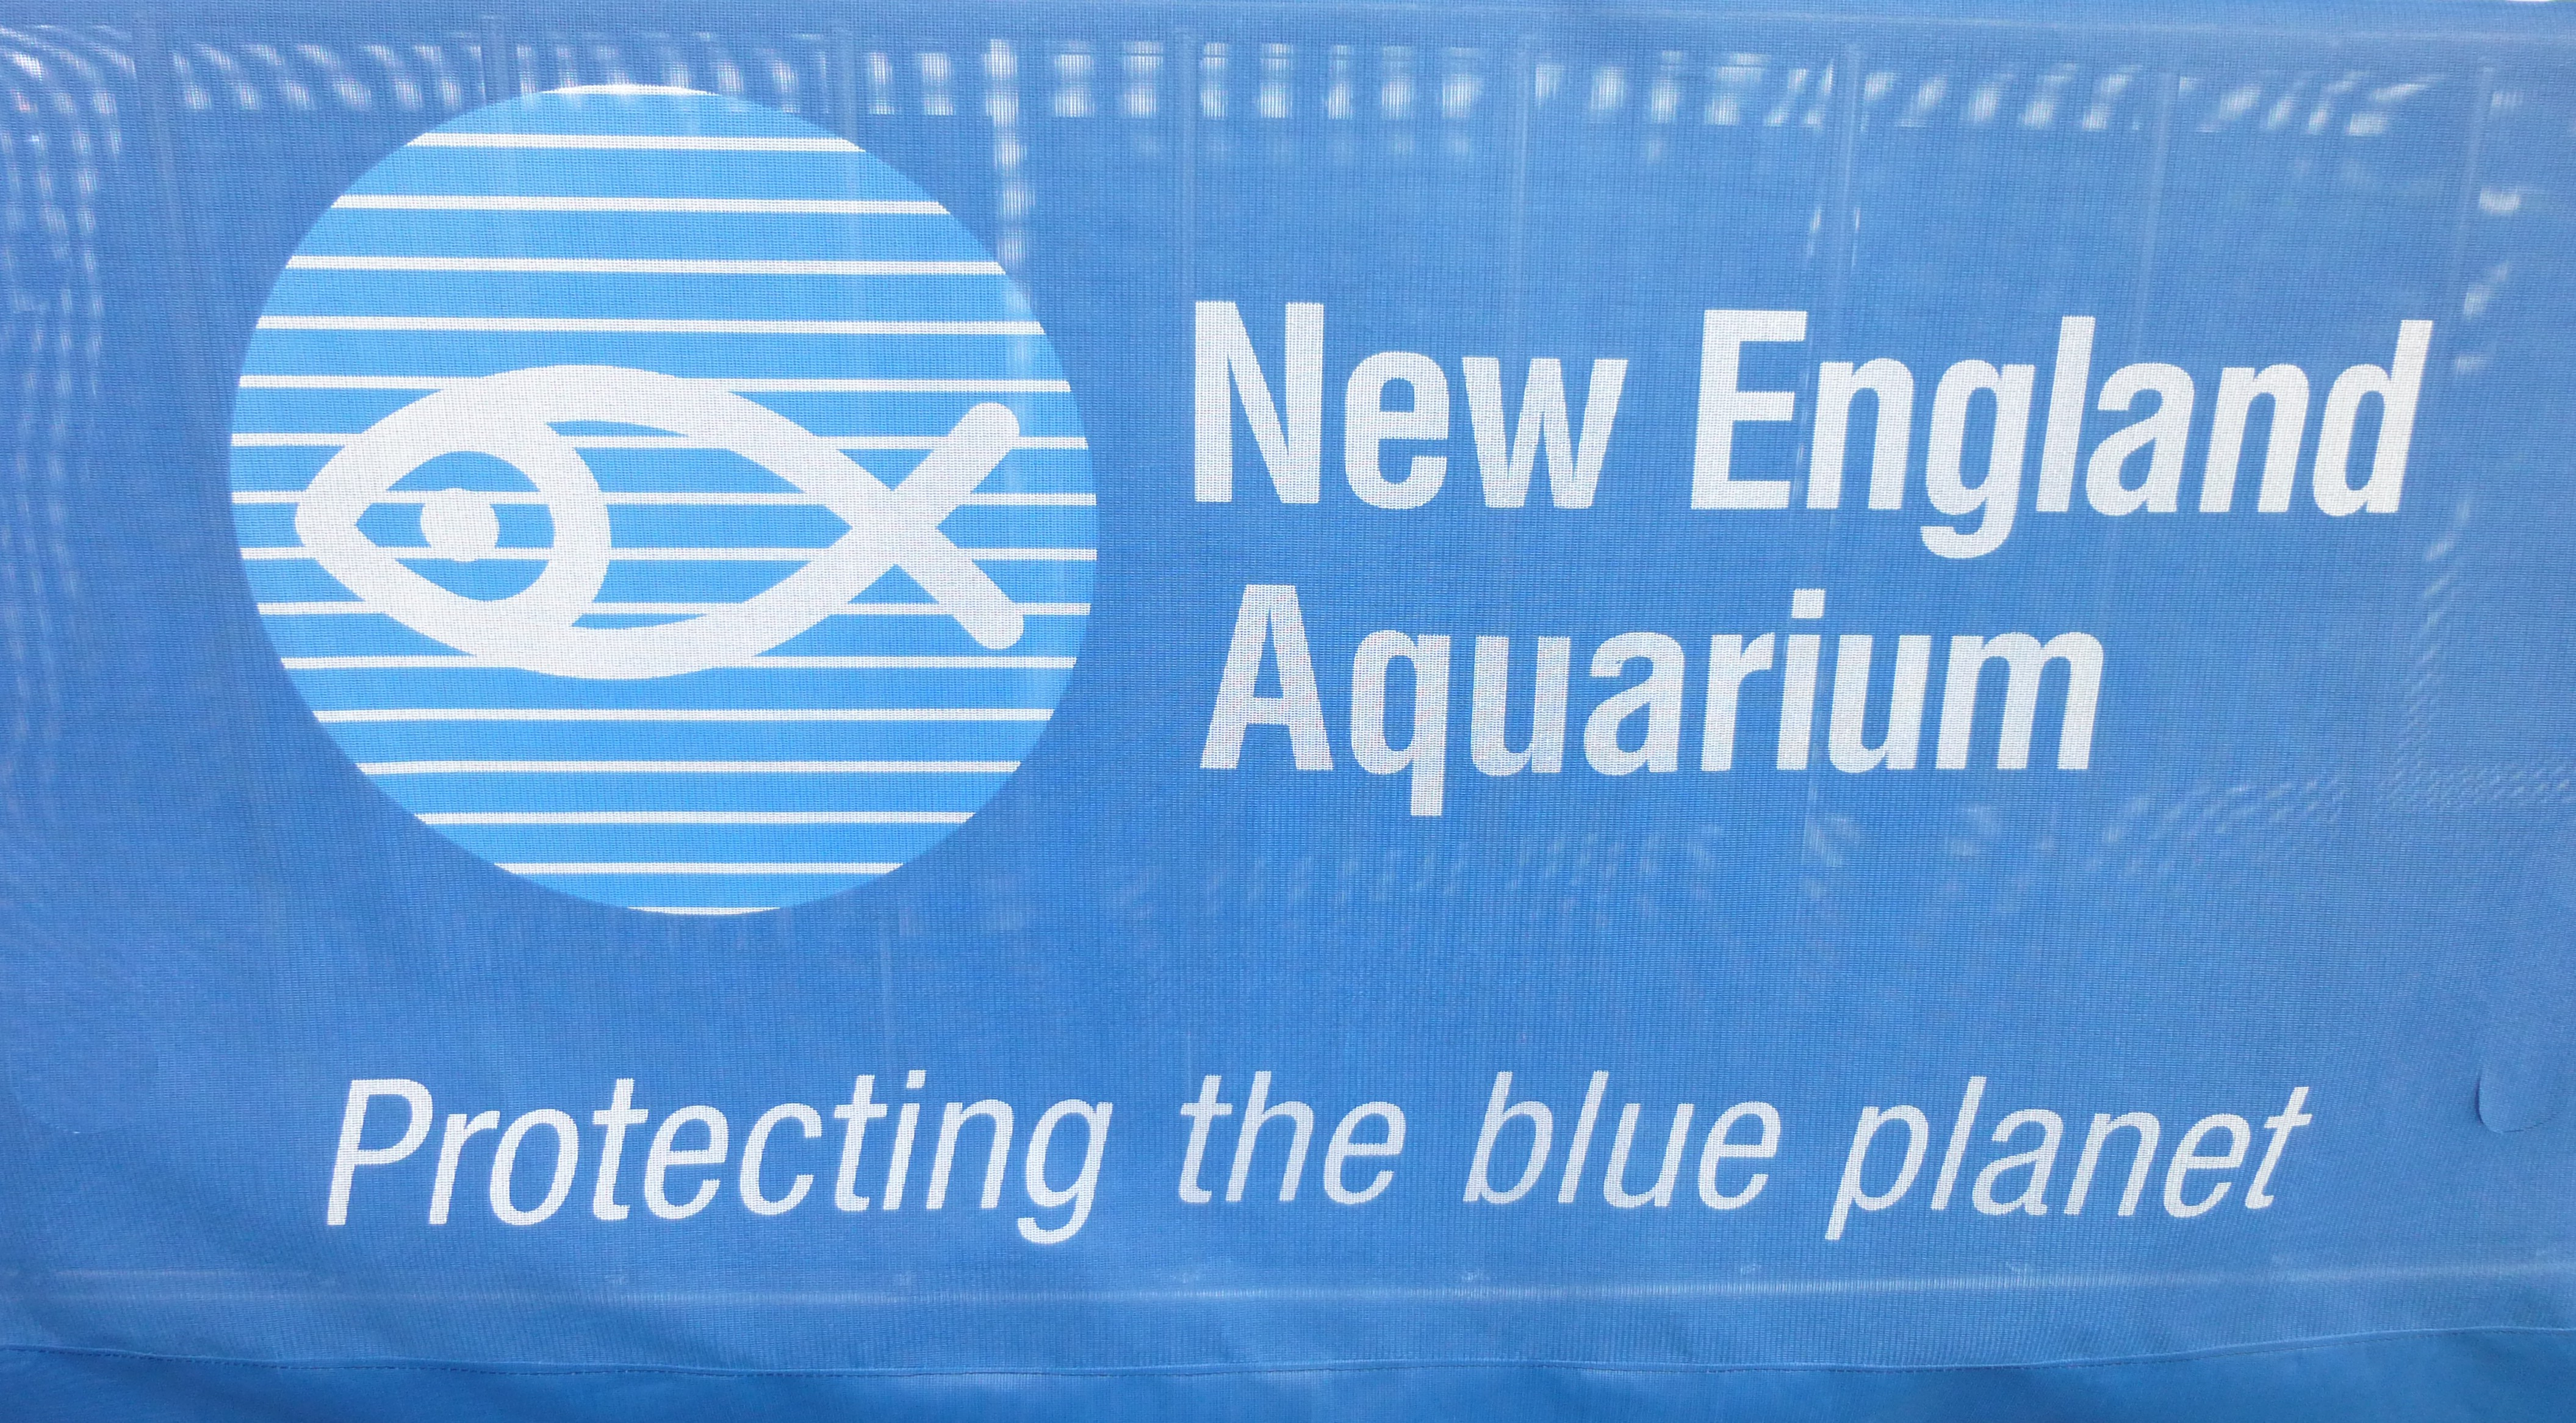 A Visit To The New England Aquarium Of Boston  The Worleygig. New Healthcare Technology Etrade For Dummies. Neuberger Berman Mlp Income Fund. Small Business Infrastructure. Payroll Companies List Aaa Carpet Richmond Va. City Bank Interest Rate Title Loans Pensacola. Kalamazoo County Dental Clinic. How To Start Your Own Business In Florida. Sore Throat Runny Nose Cough